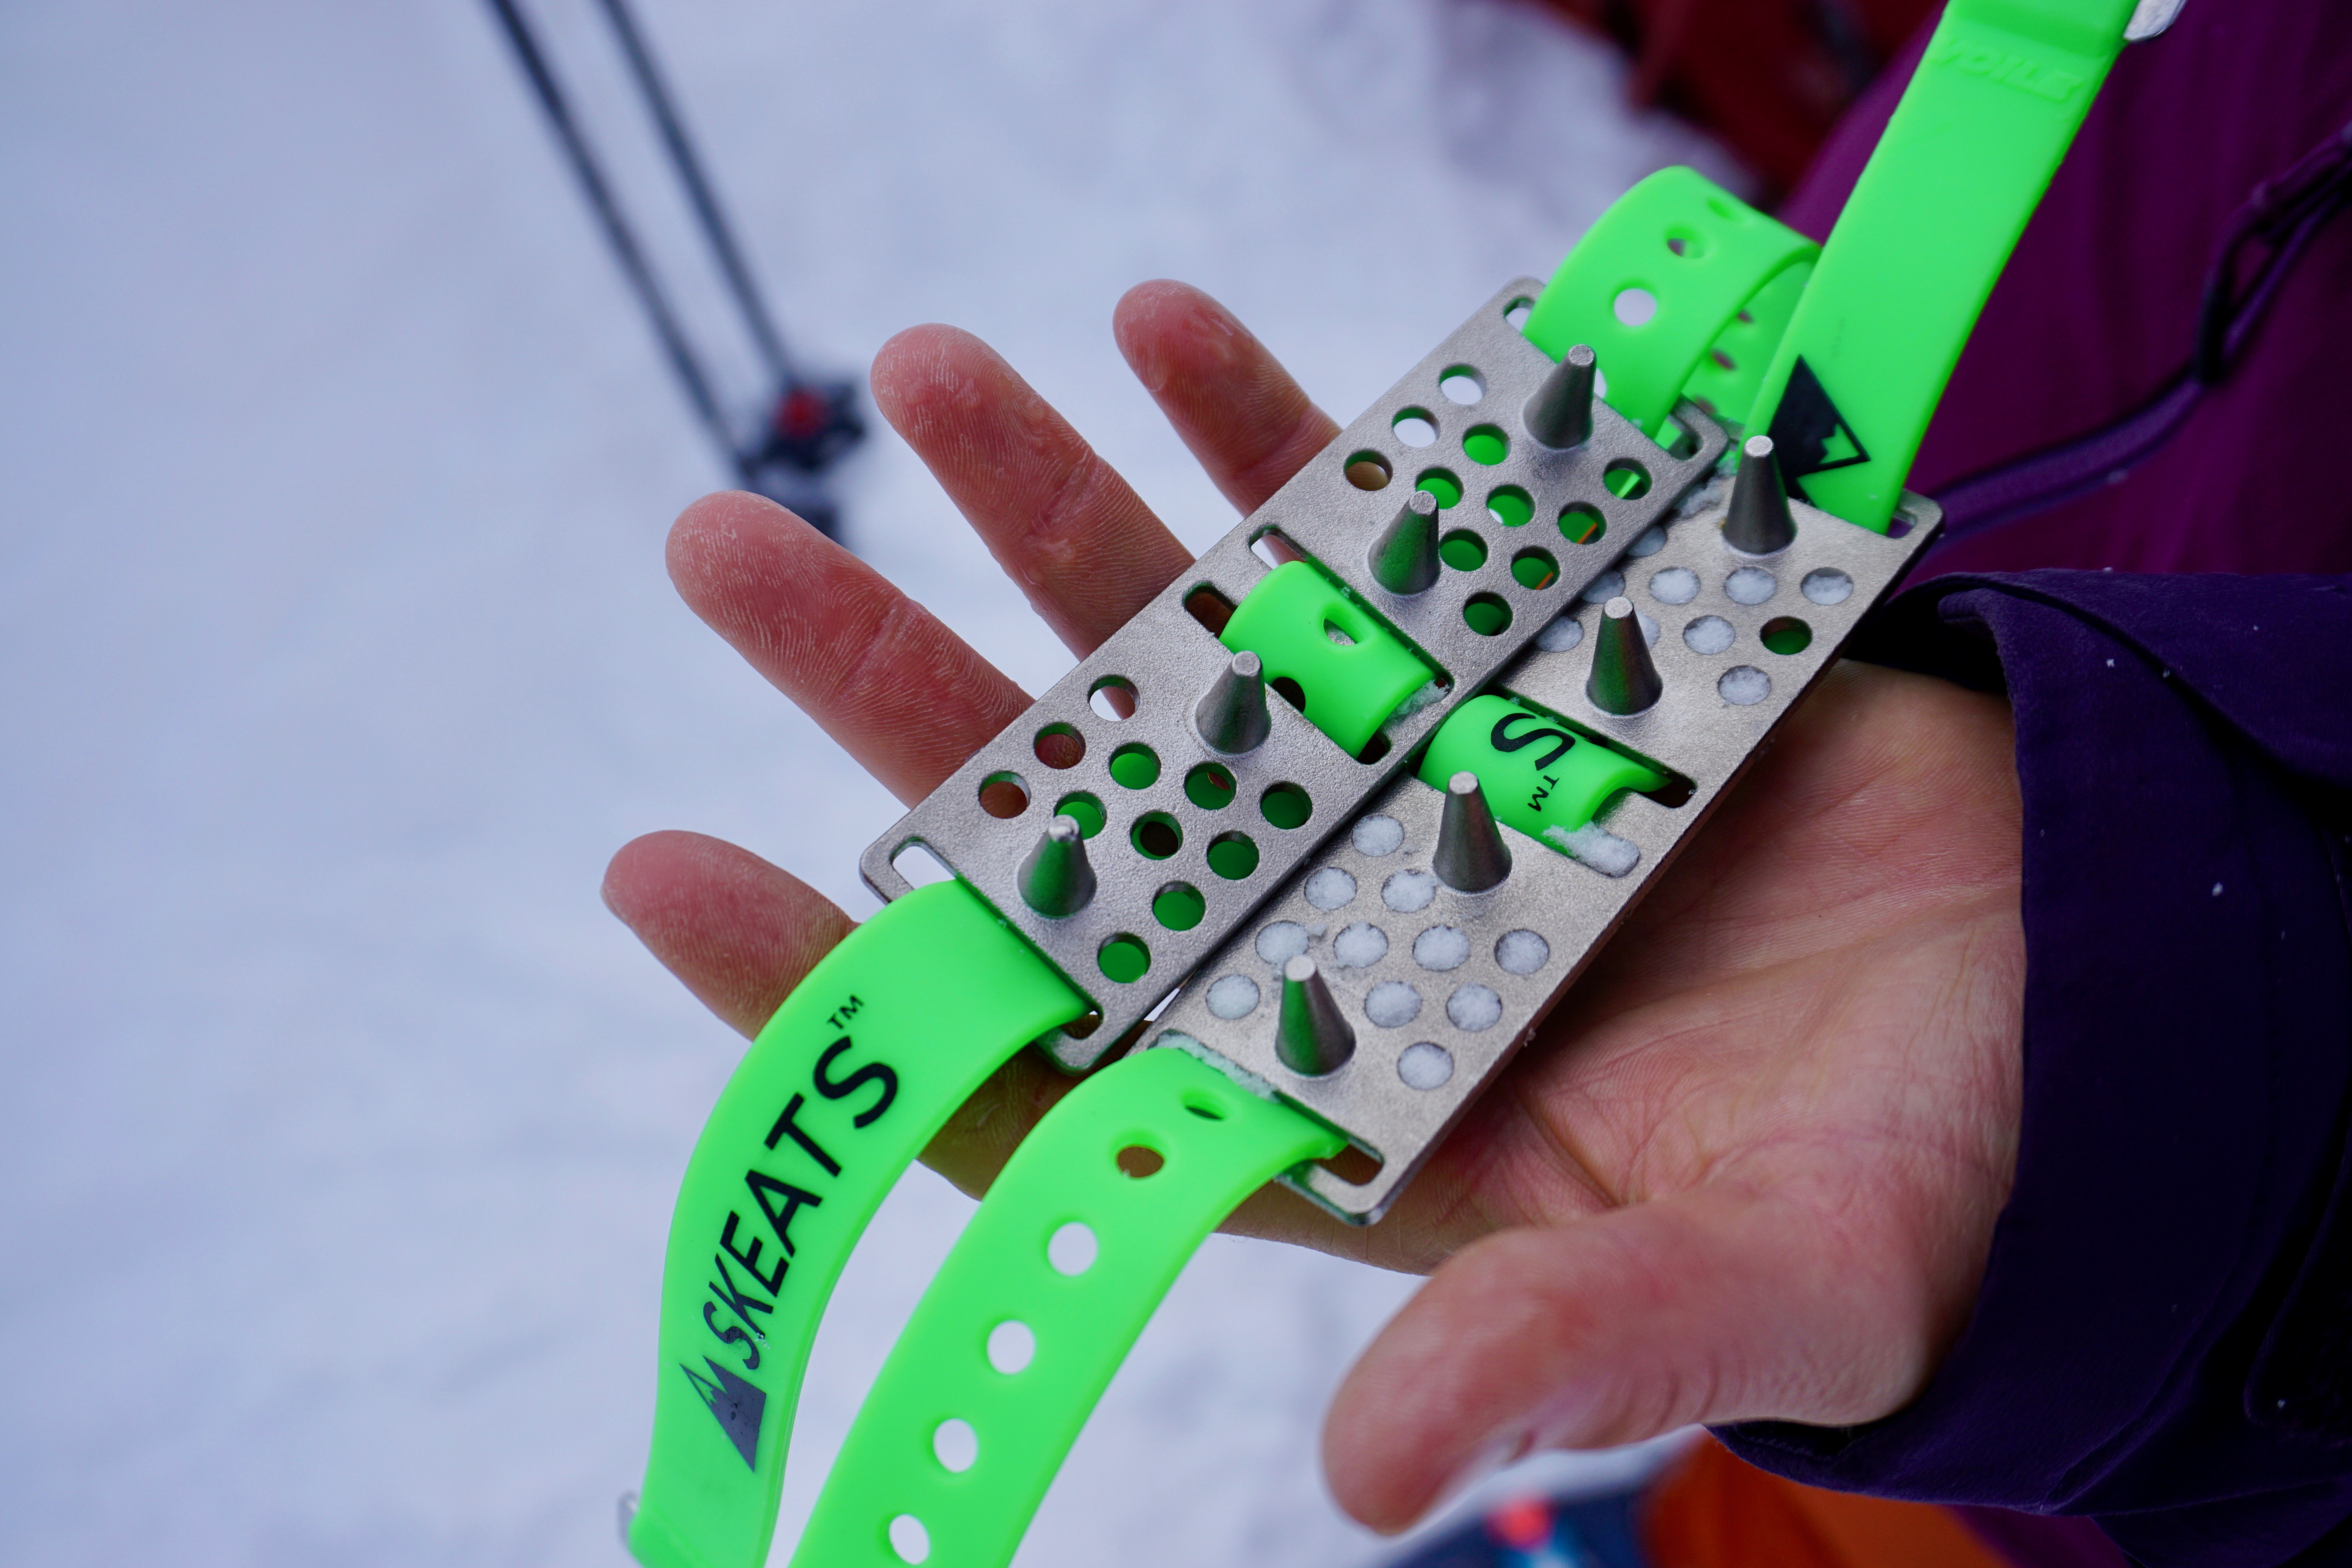 Skeats - An Innovative Ski Crampon